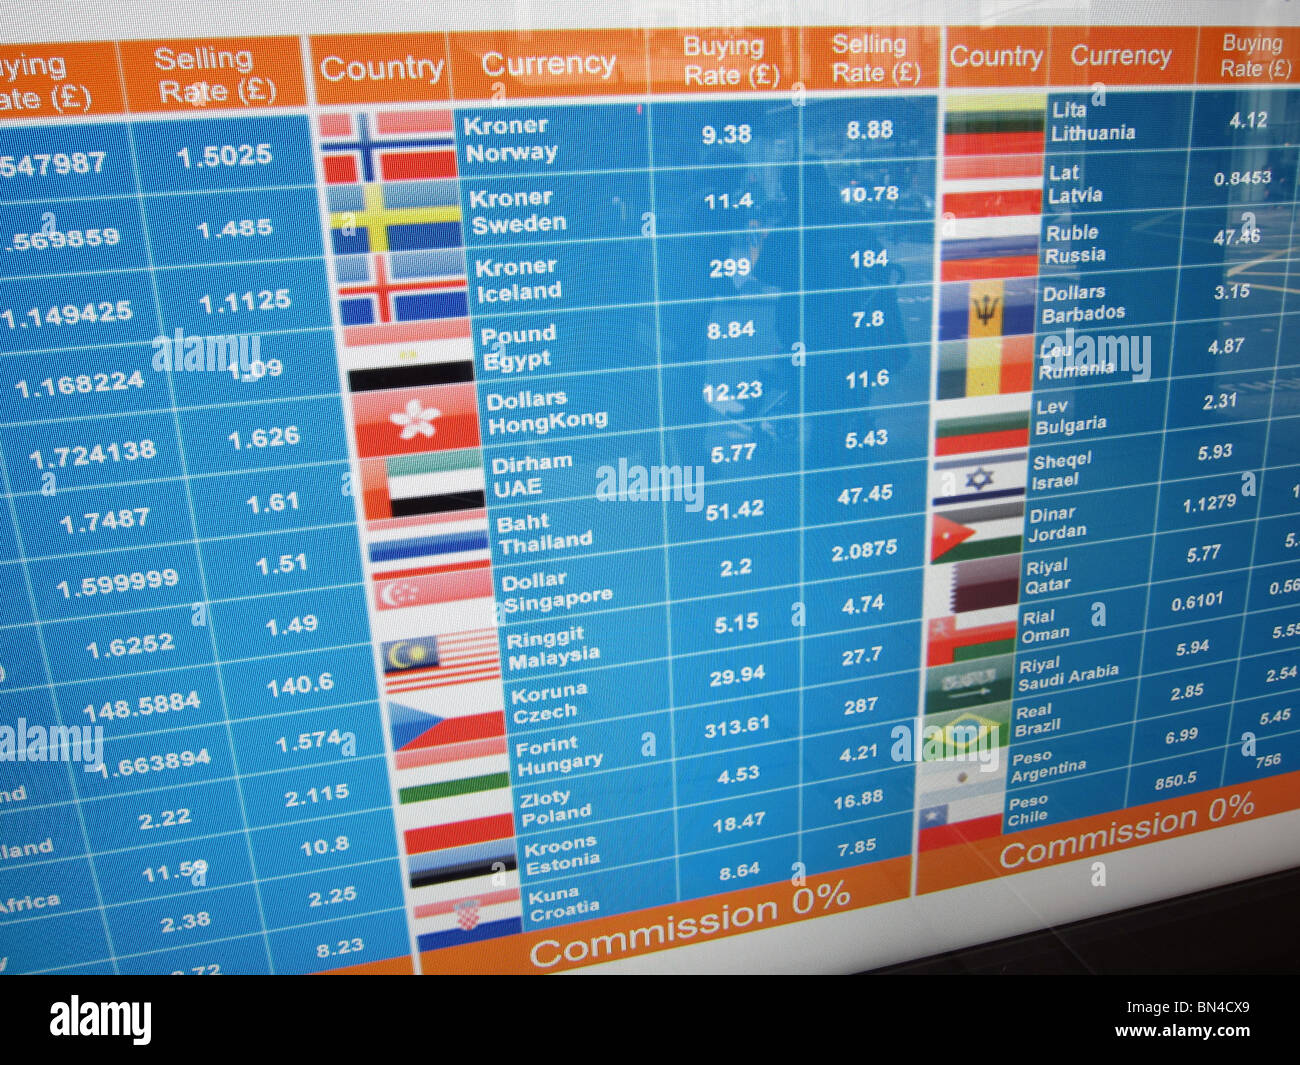 Currency rates in pakistan today exchange rates forex rates